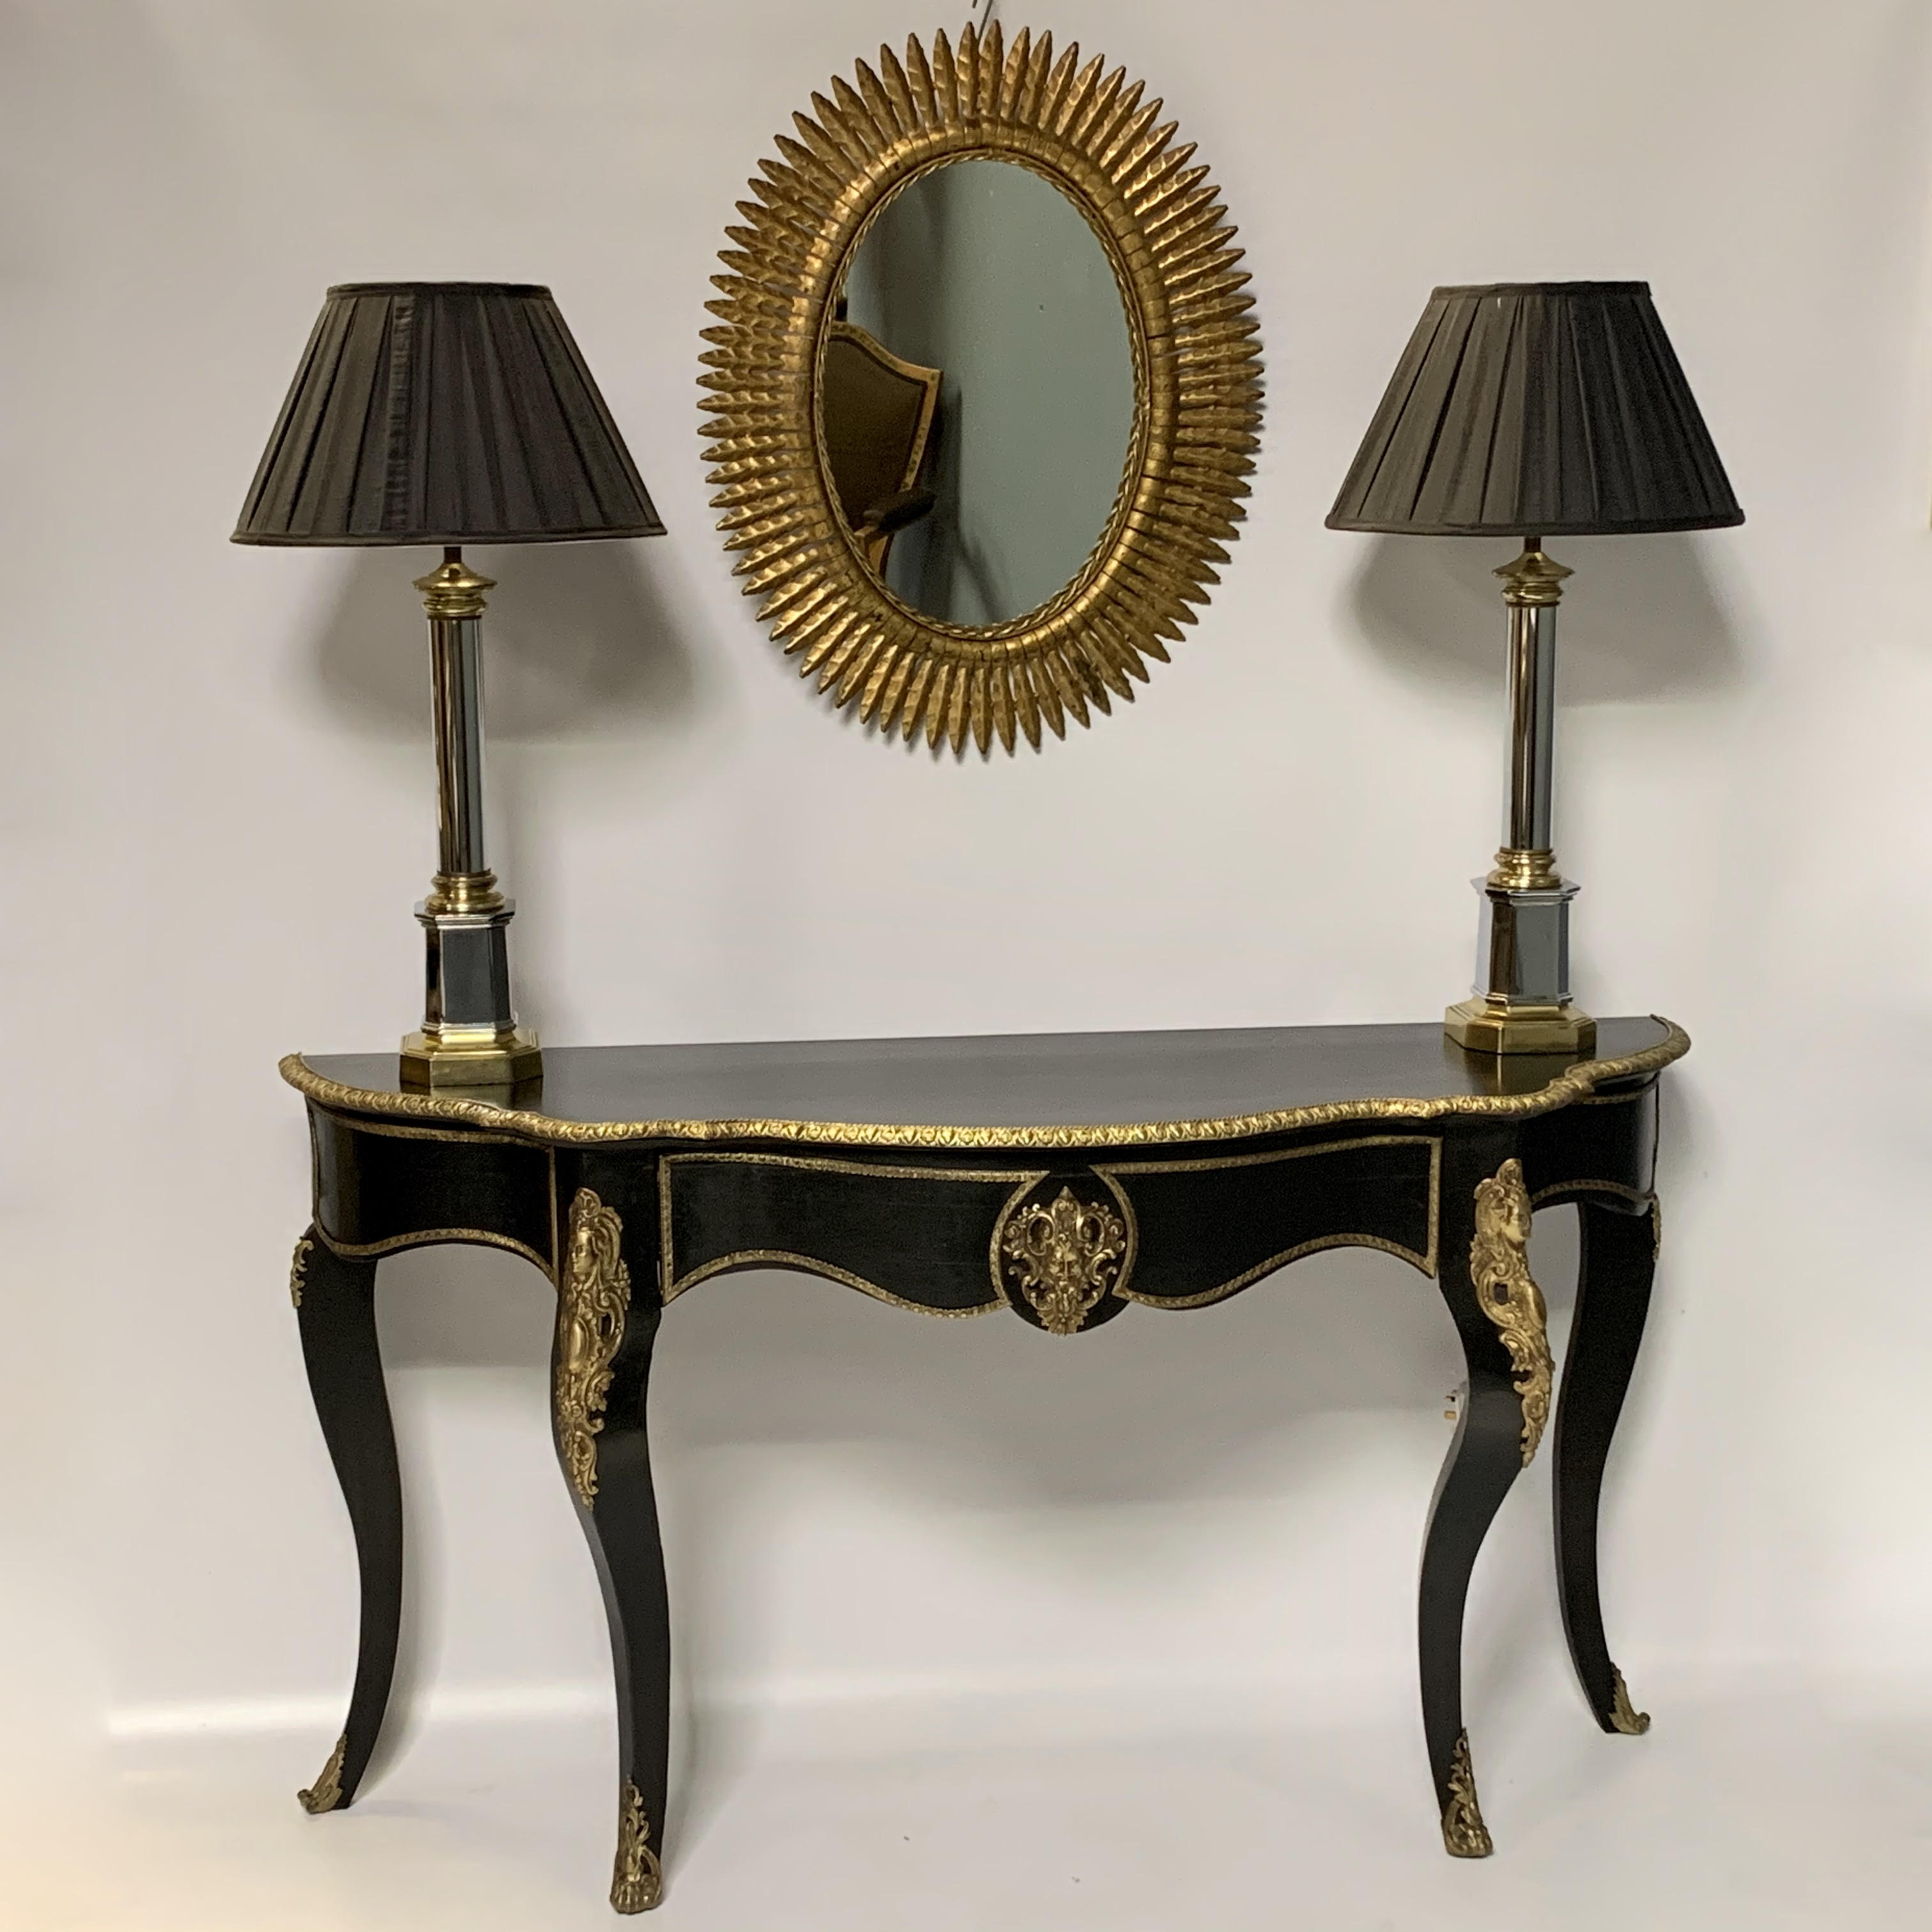 Mirror, Table and Lamps